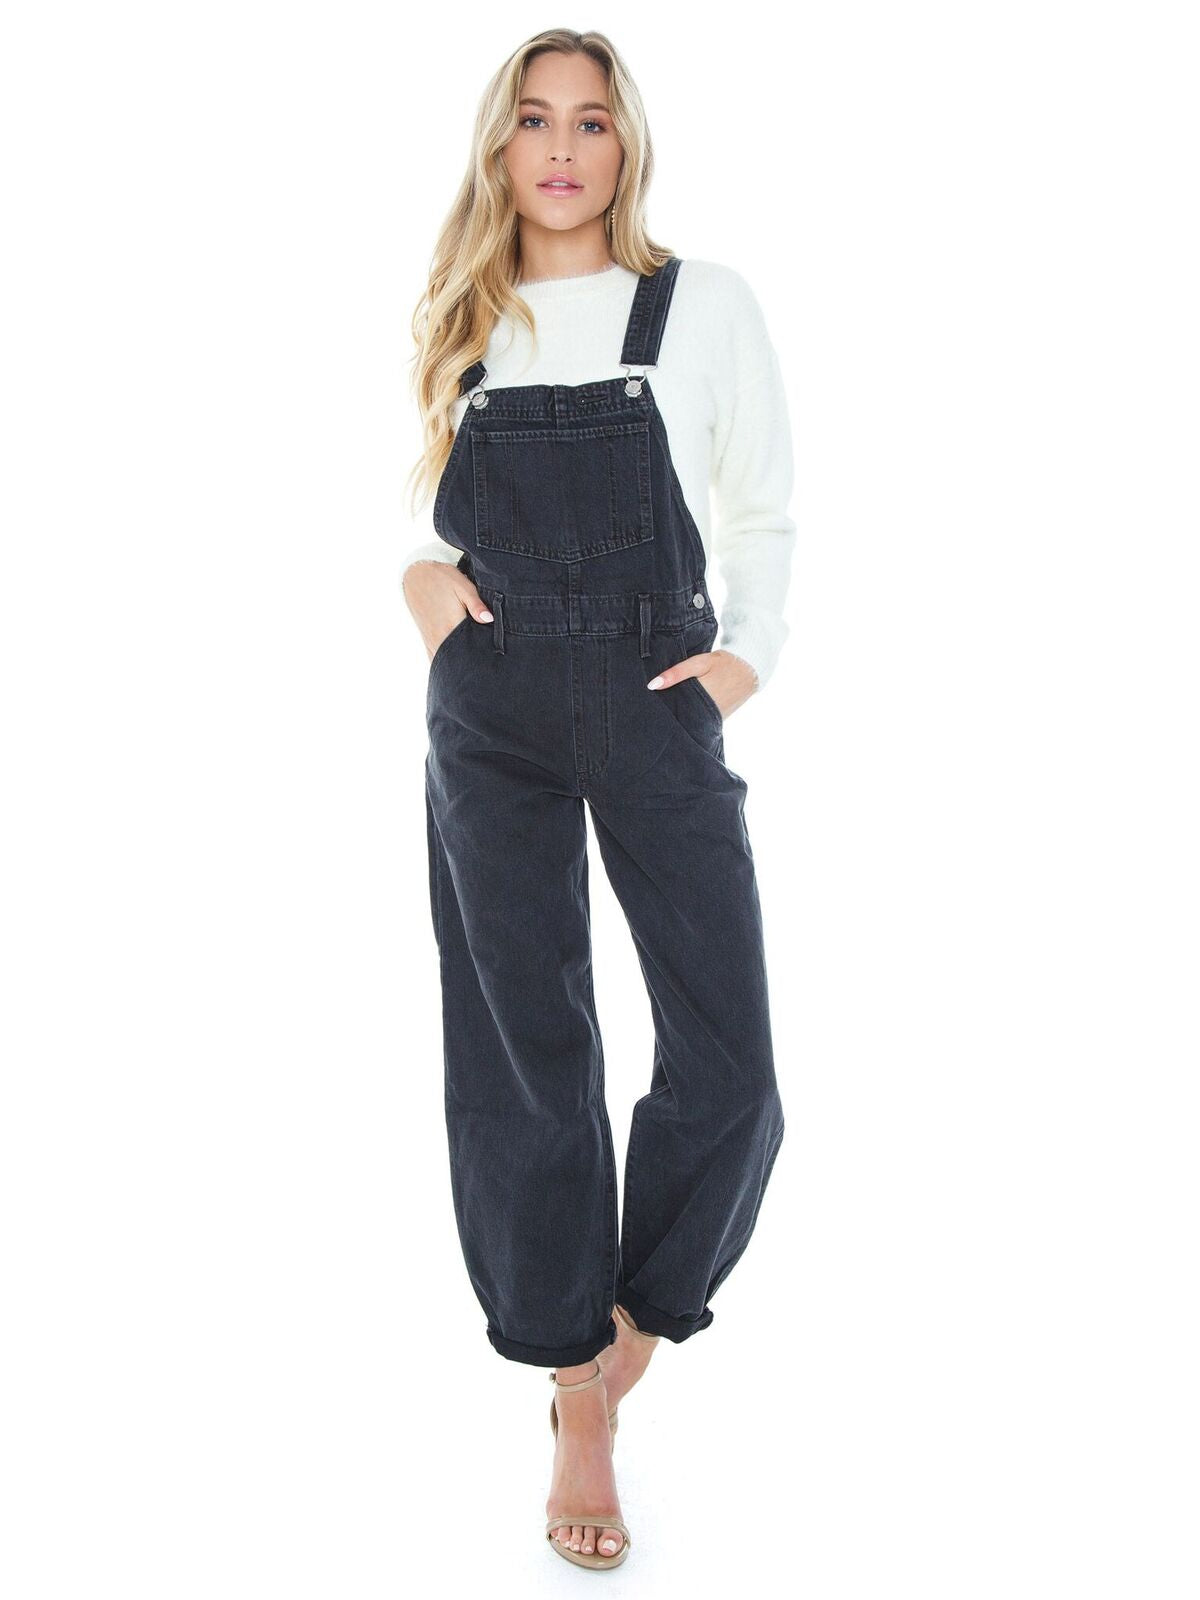 Girl outfit in a jumpsuit rental from Levis called Baggy Overall